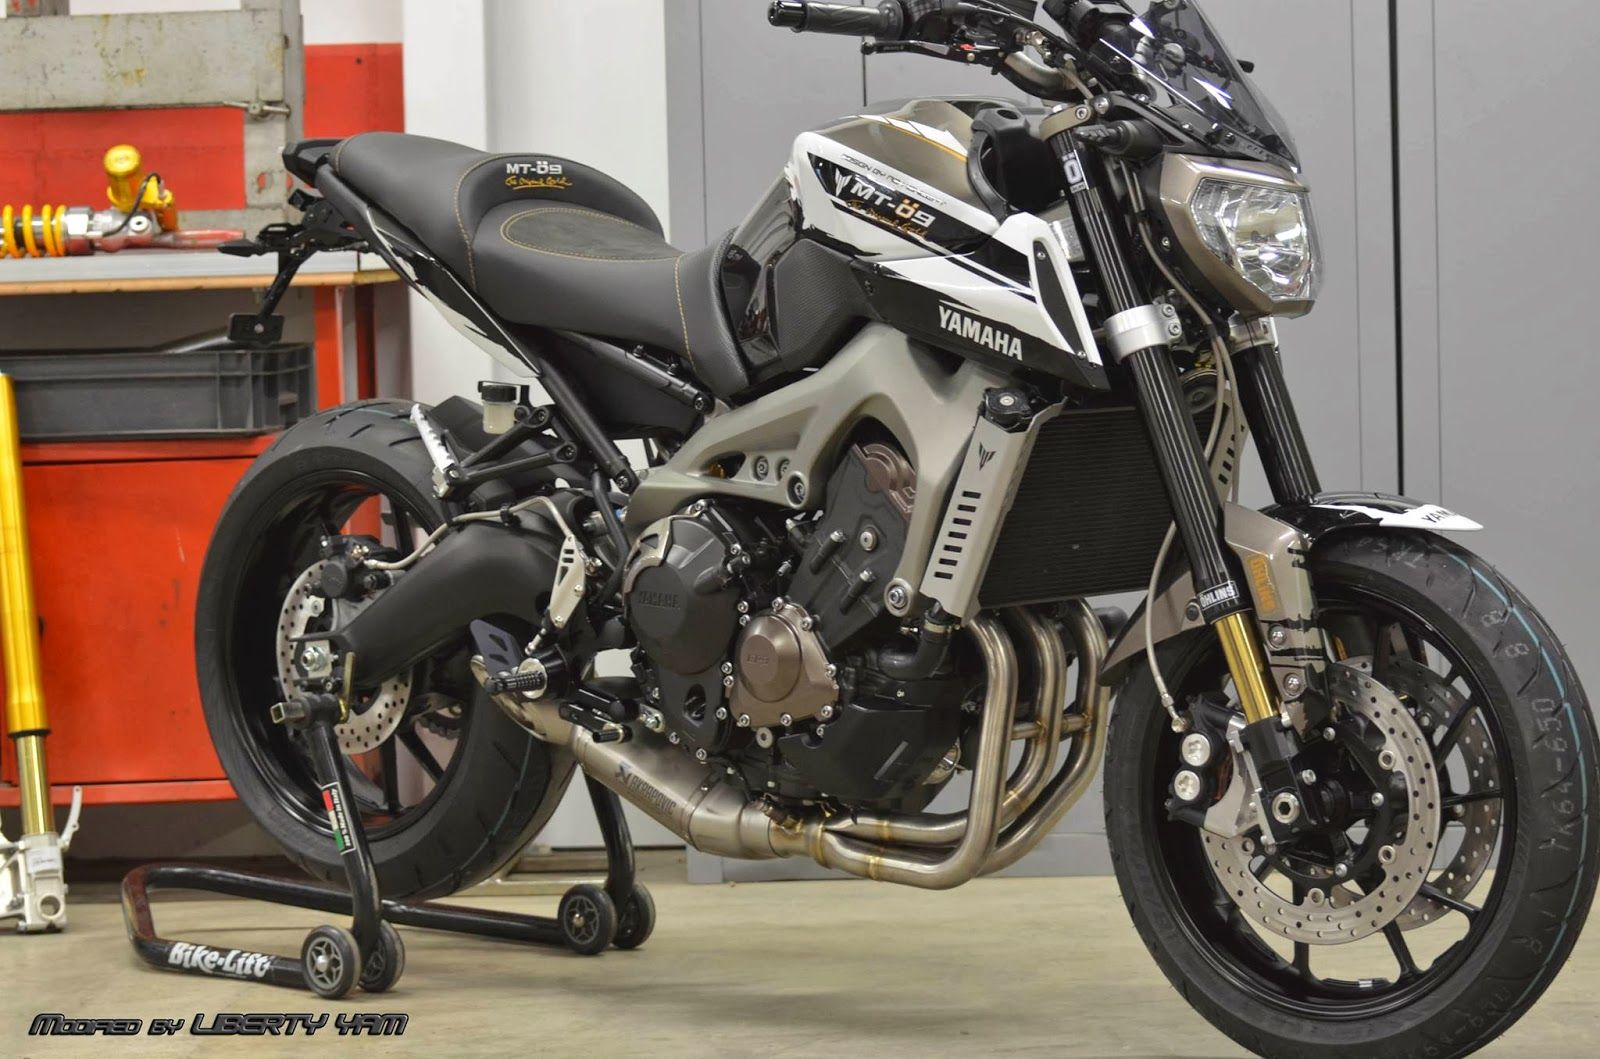 yamaha mt 09 ohlins by liberty yam 1600 1059 mt. Black Bedroom Furniture Sets. Home Design Ideas